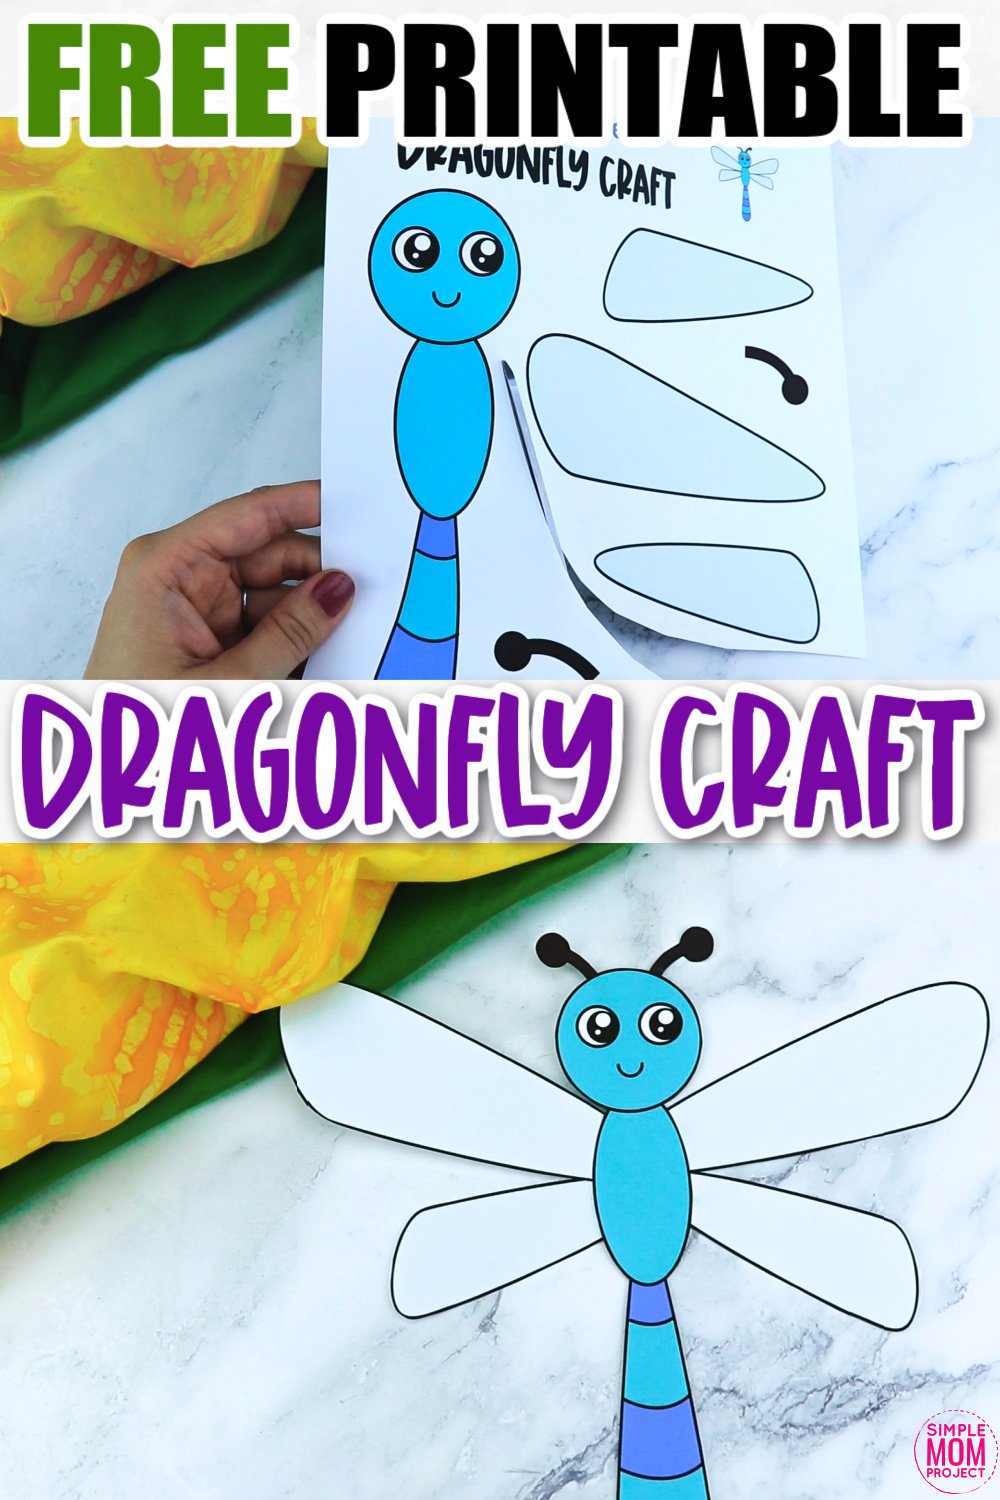 Free Printable Dragonfly Craft for Kids, preschoolers and toddlers